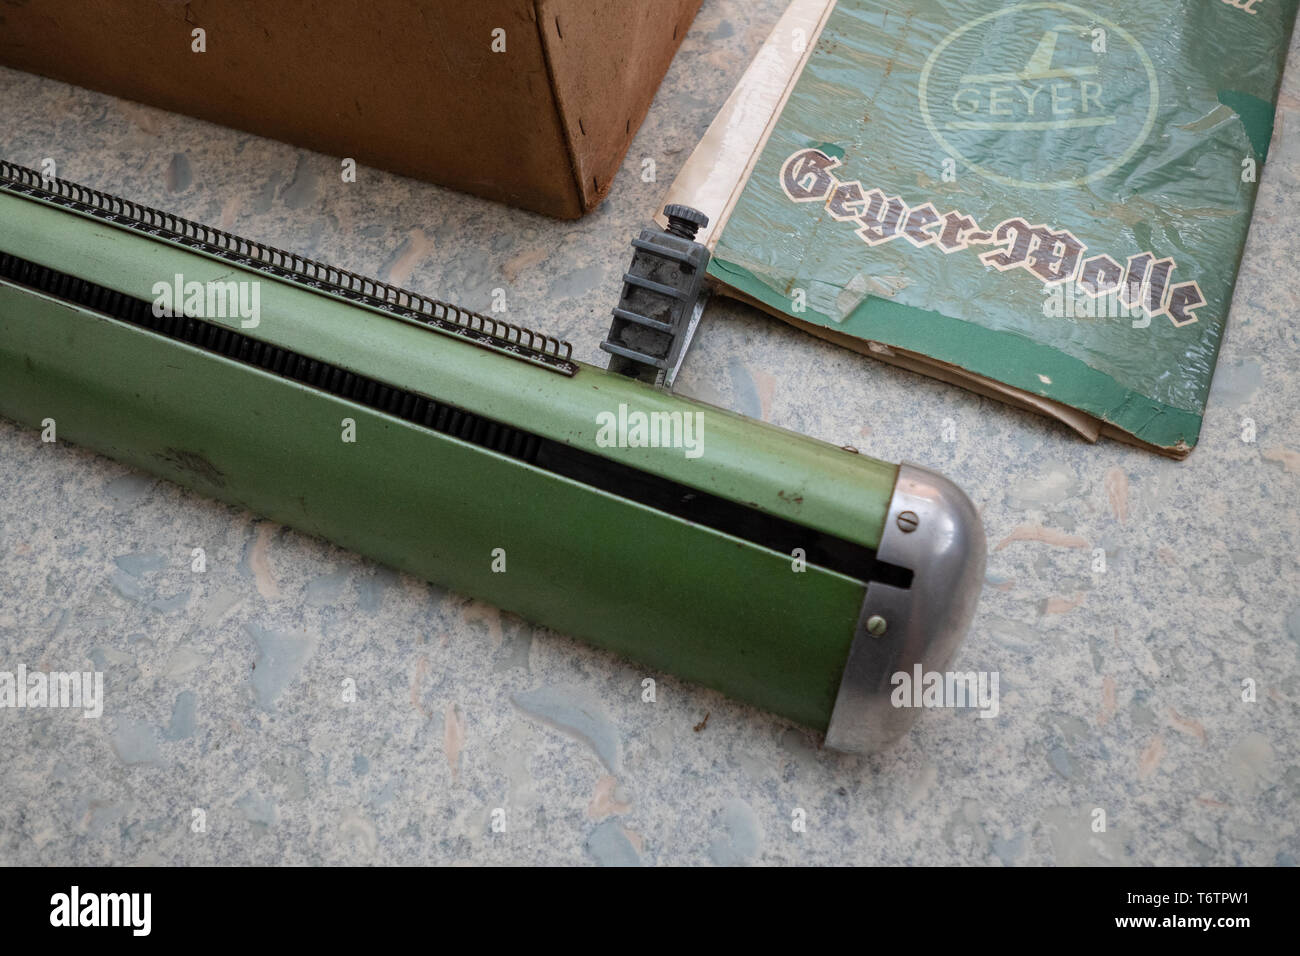 Knitting Machine Stock Photos Knitting Machine Stock Images Alamy